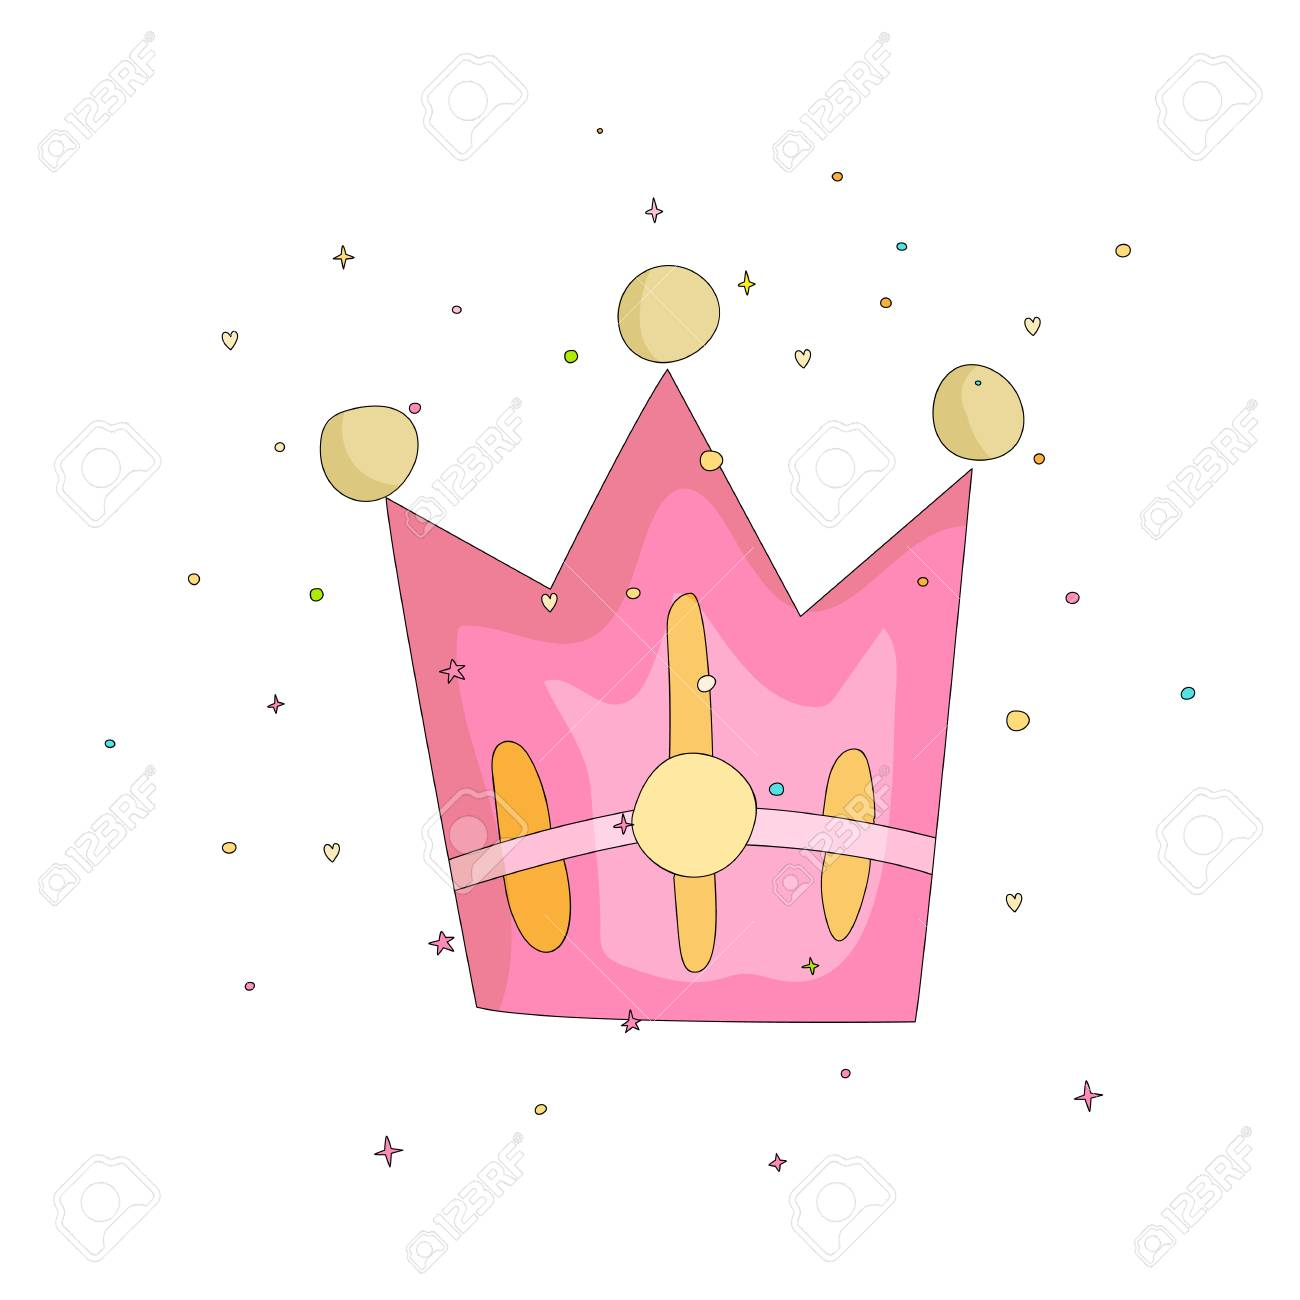 Cute Pink Crown With Gems Cartoon Icon Fun Cartoon Crown With Royalty Free Cliparts Vectors And Stock Illustration Image 114355724 Browse our cartoon crown images, graphics, and designs from +79.322 free vectors graphics. cute pink crown with gems cartoon icon fun cartoon crown with